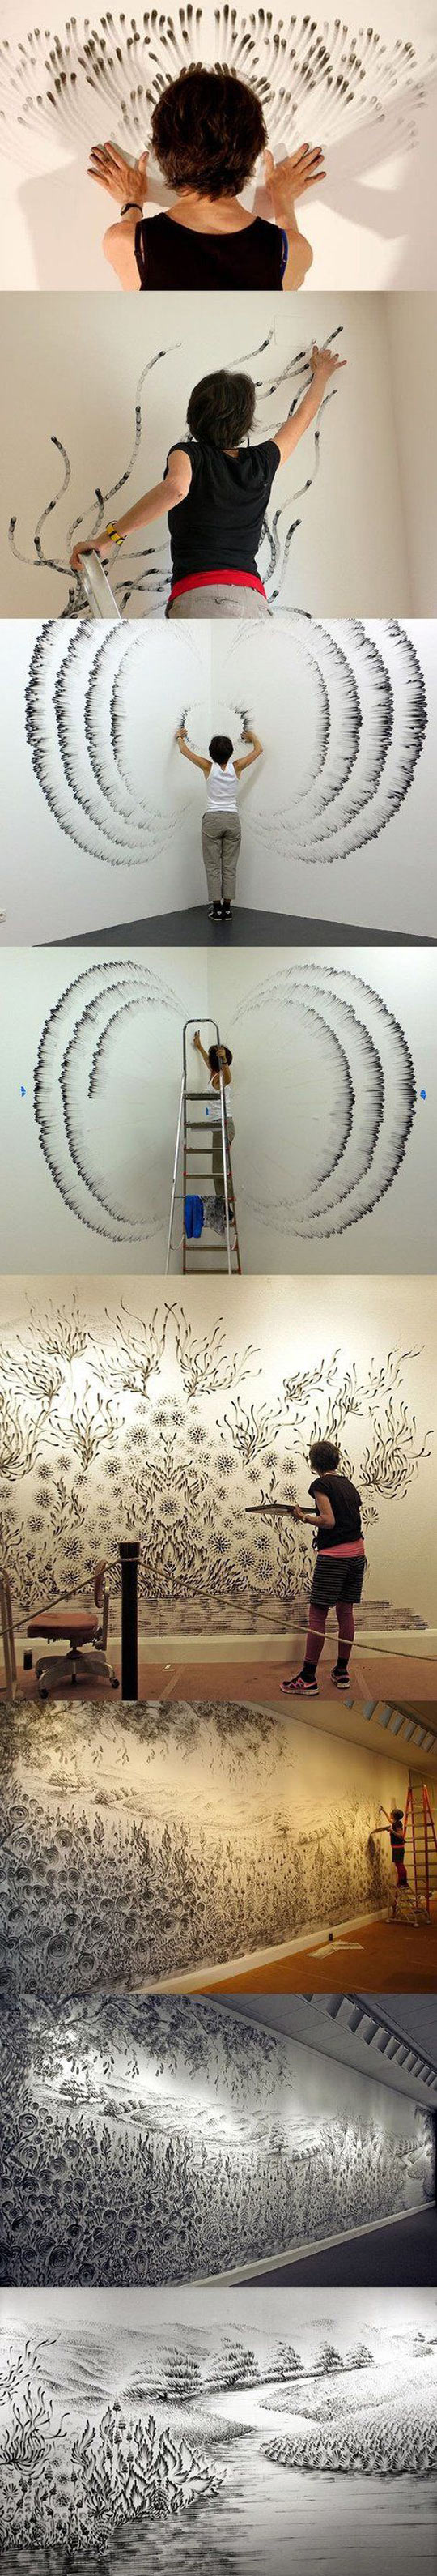 funny-finger-paint-hands-wall